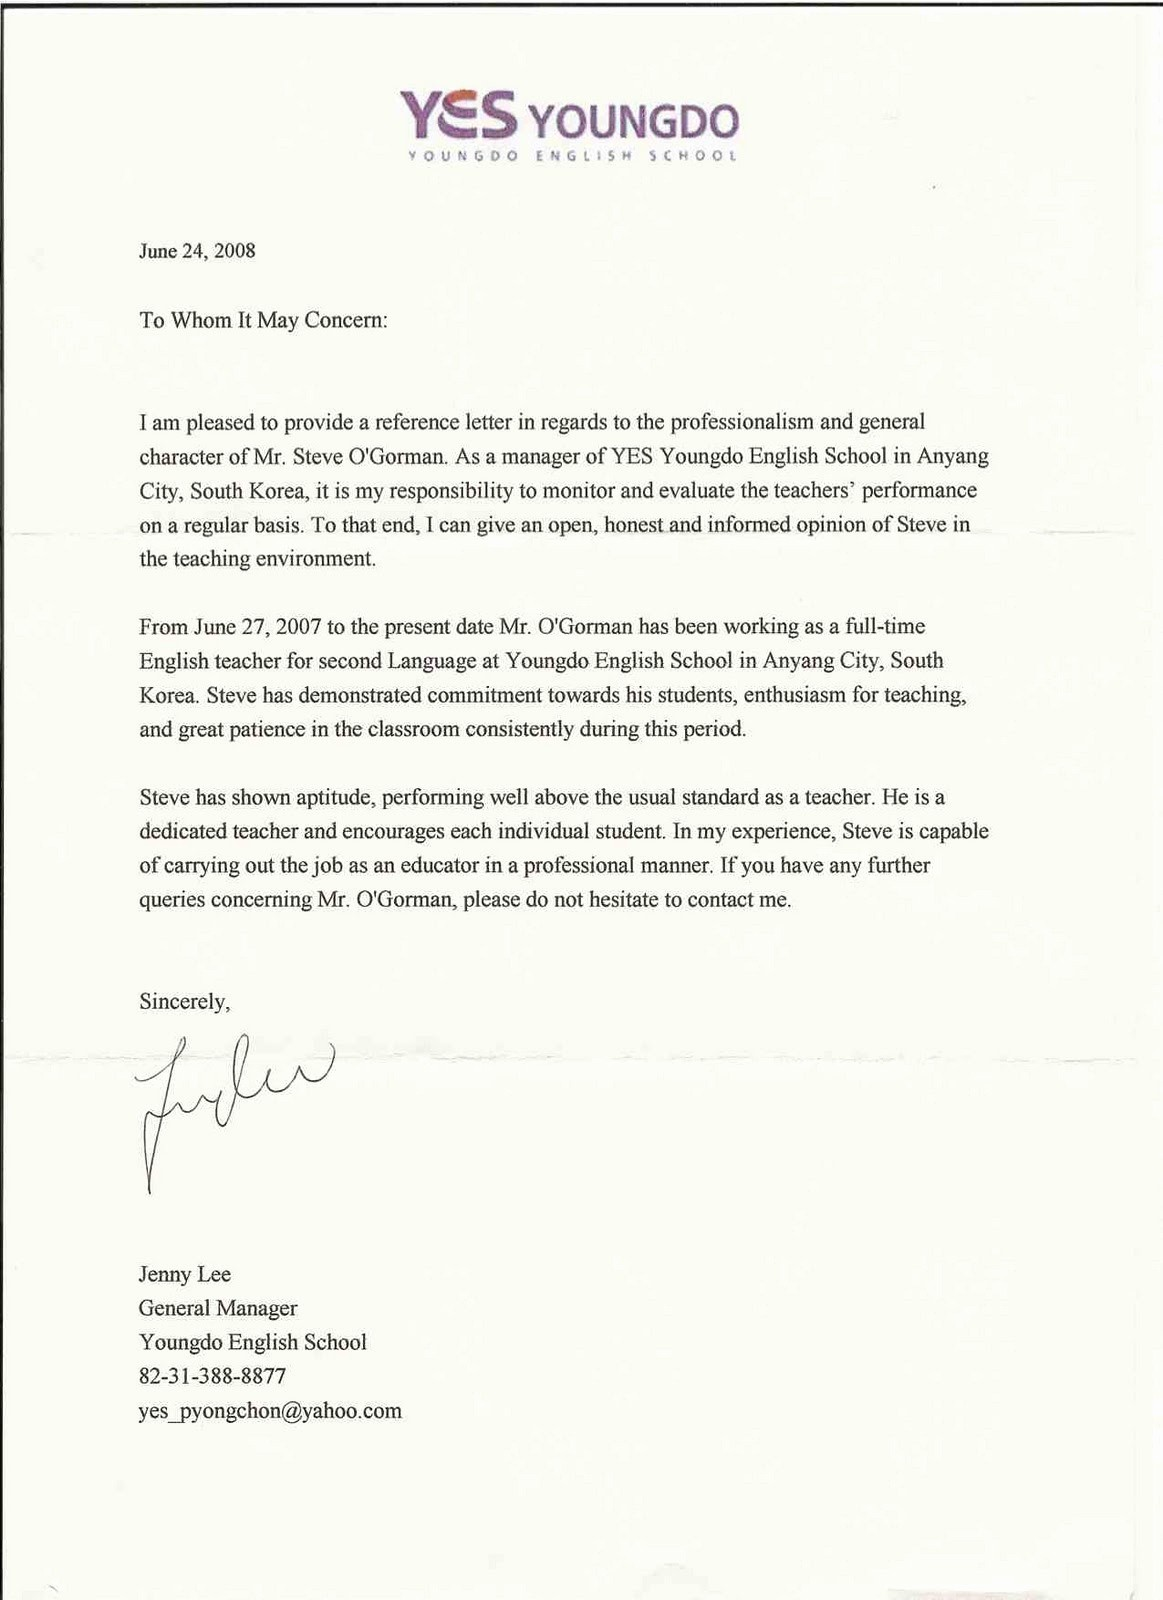 Reference Letter Examples for Teachers Unique Professional Teaching Portfolio Ell Letter Of Reference